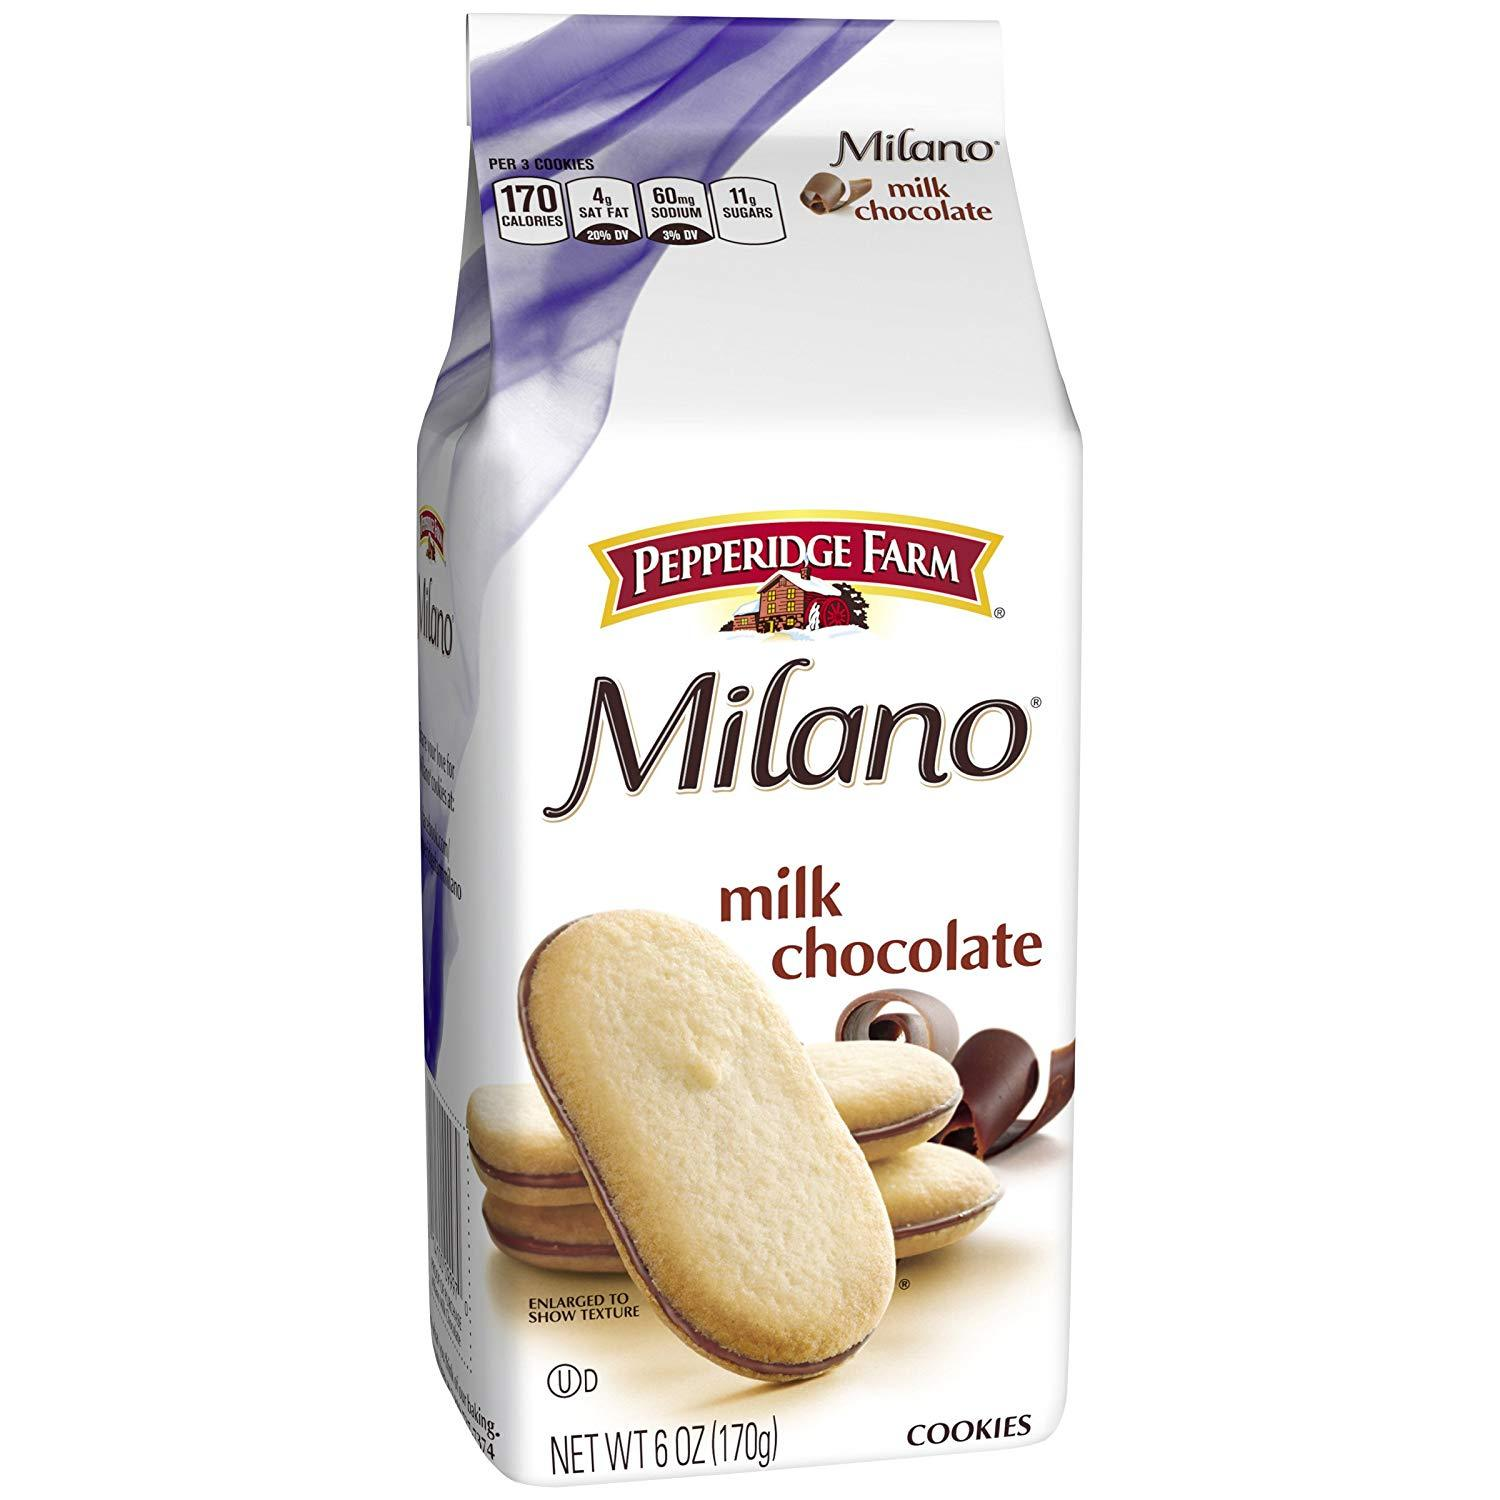 stl>Pepperidge Farm Milano Cookies